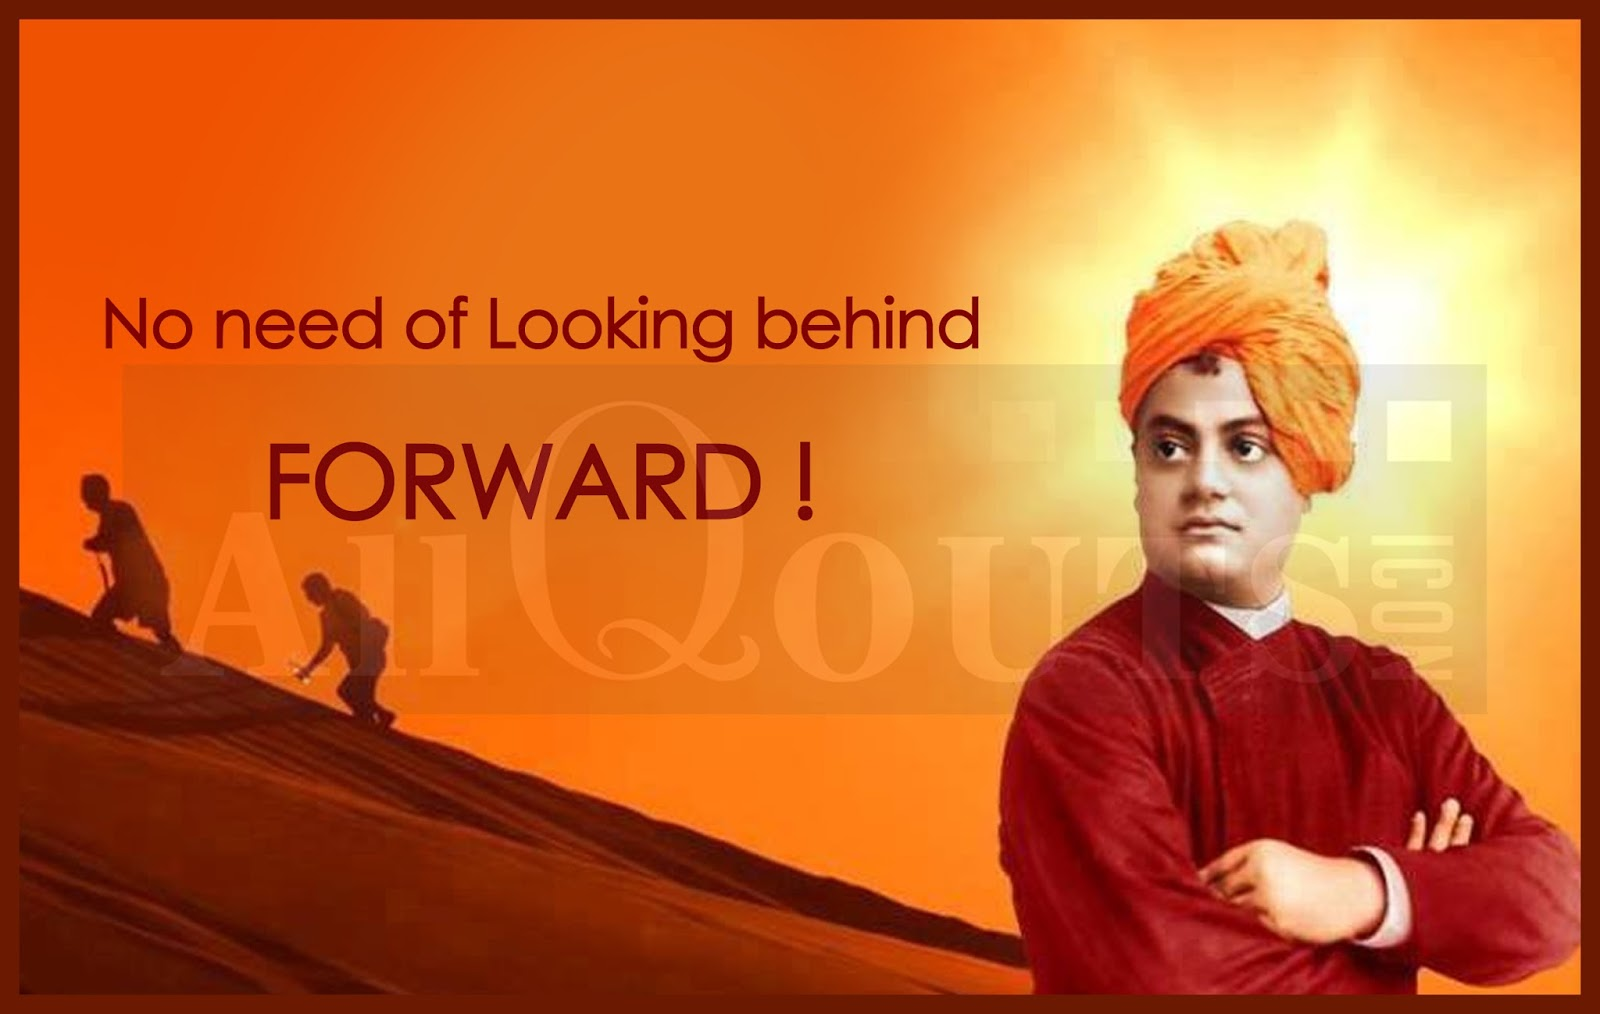 Telugu Love Quotes Wallpapers Free Download Download Swami Vivekananda Hd Wallpapers With Quotes Gallery